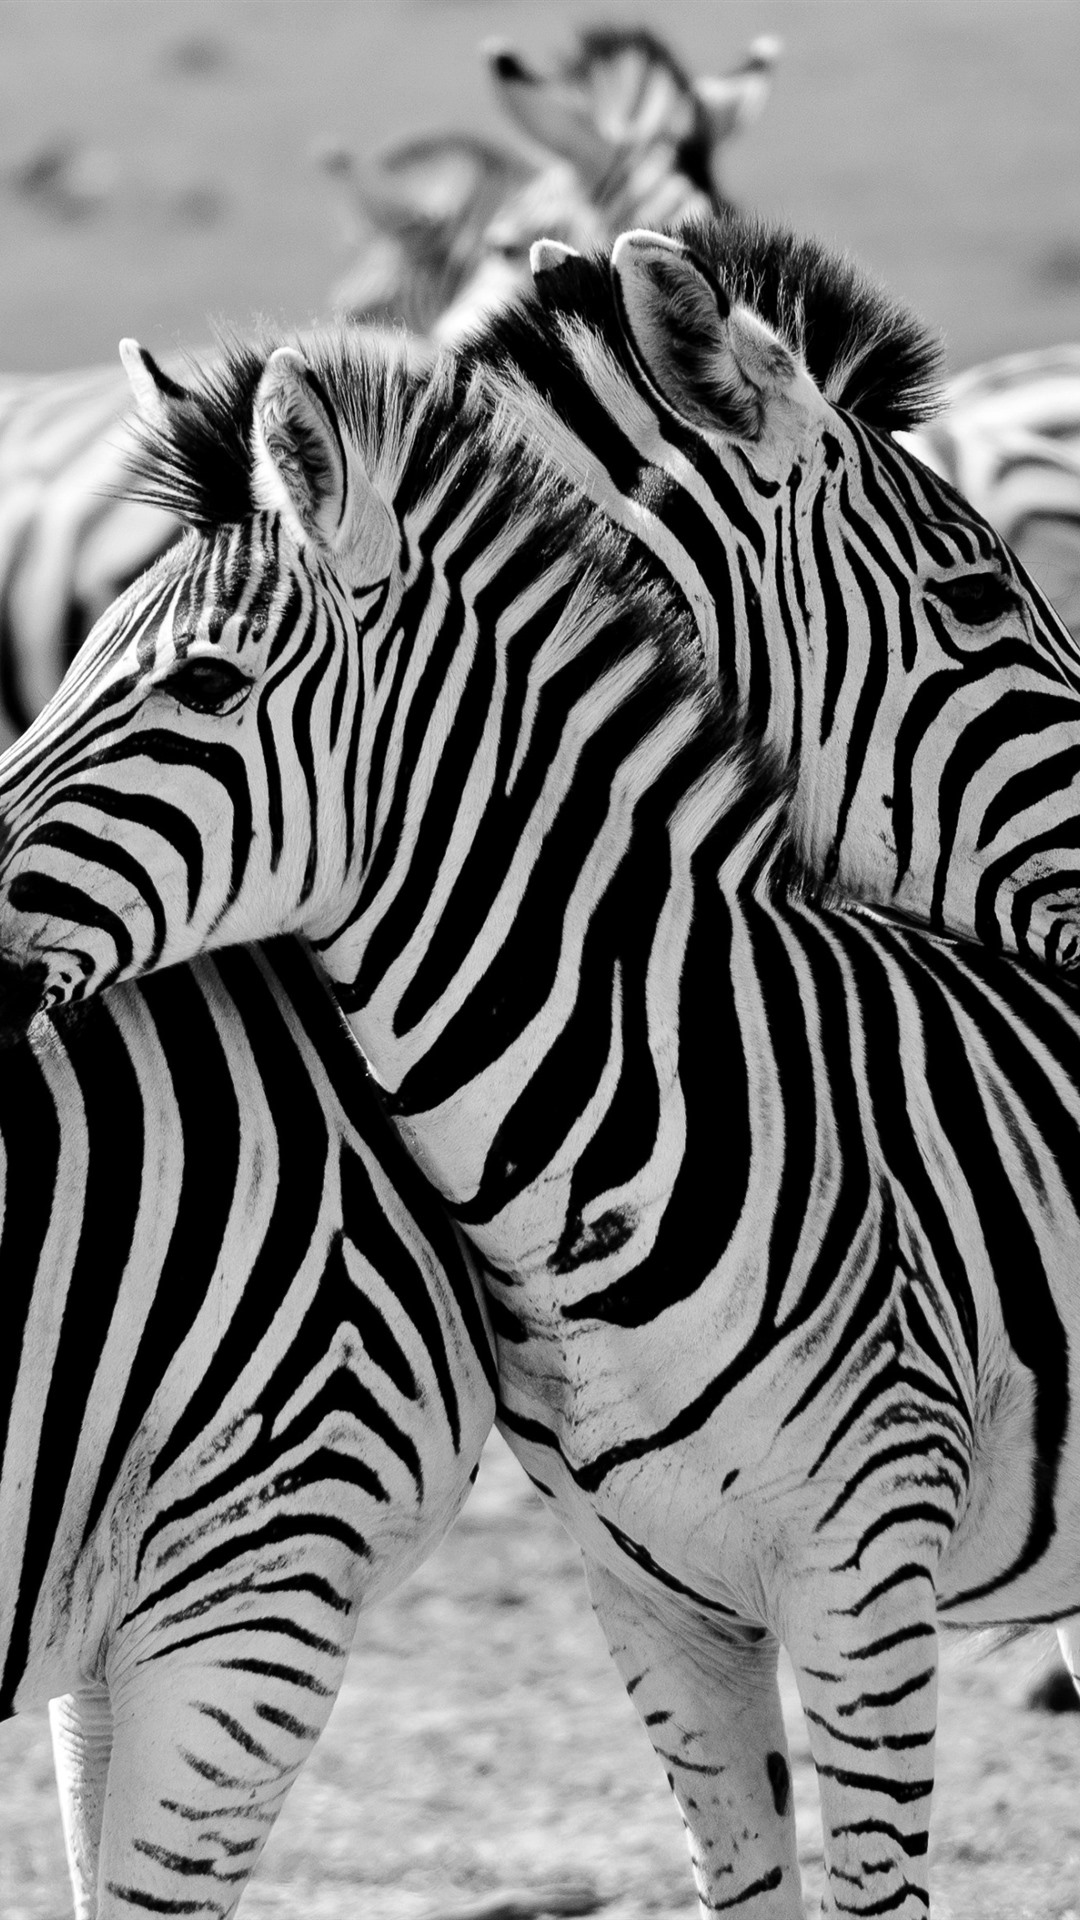 Some Zebras Africa 1080x1920 Iphone 8 7 6 6s Plus Wallpaper